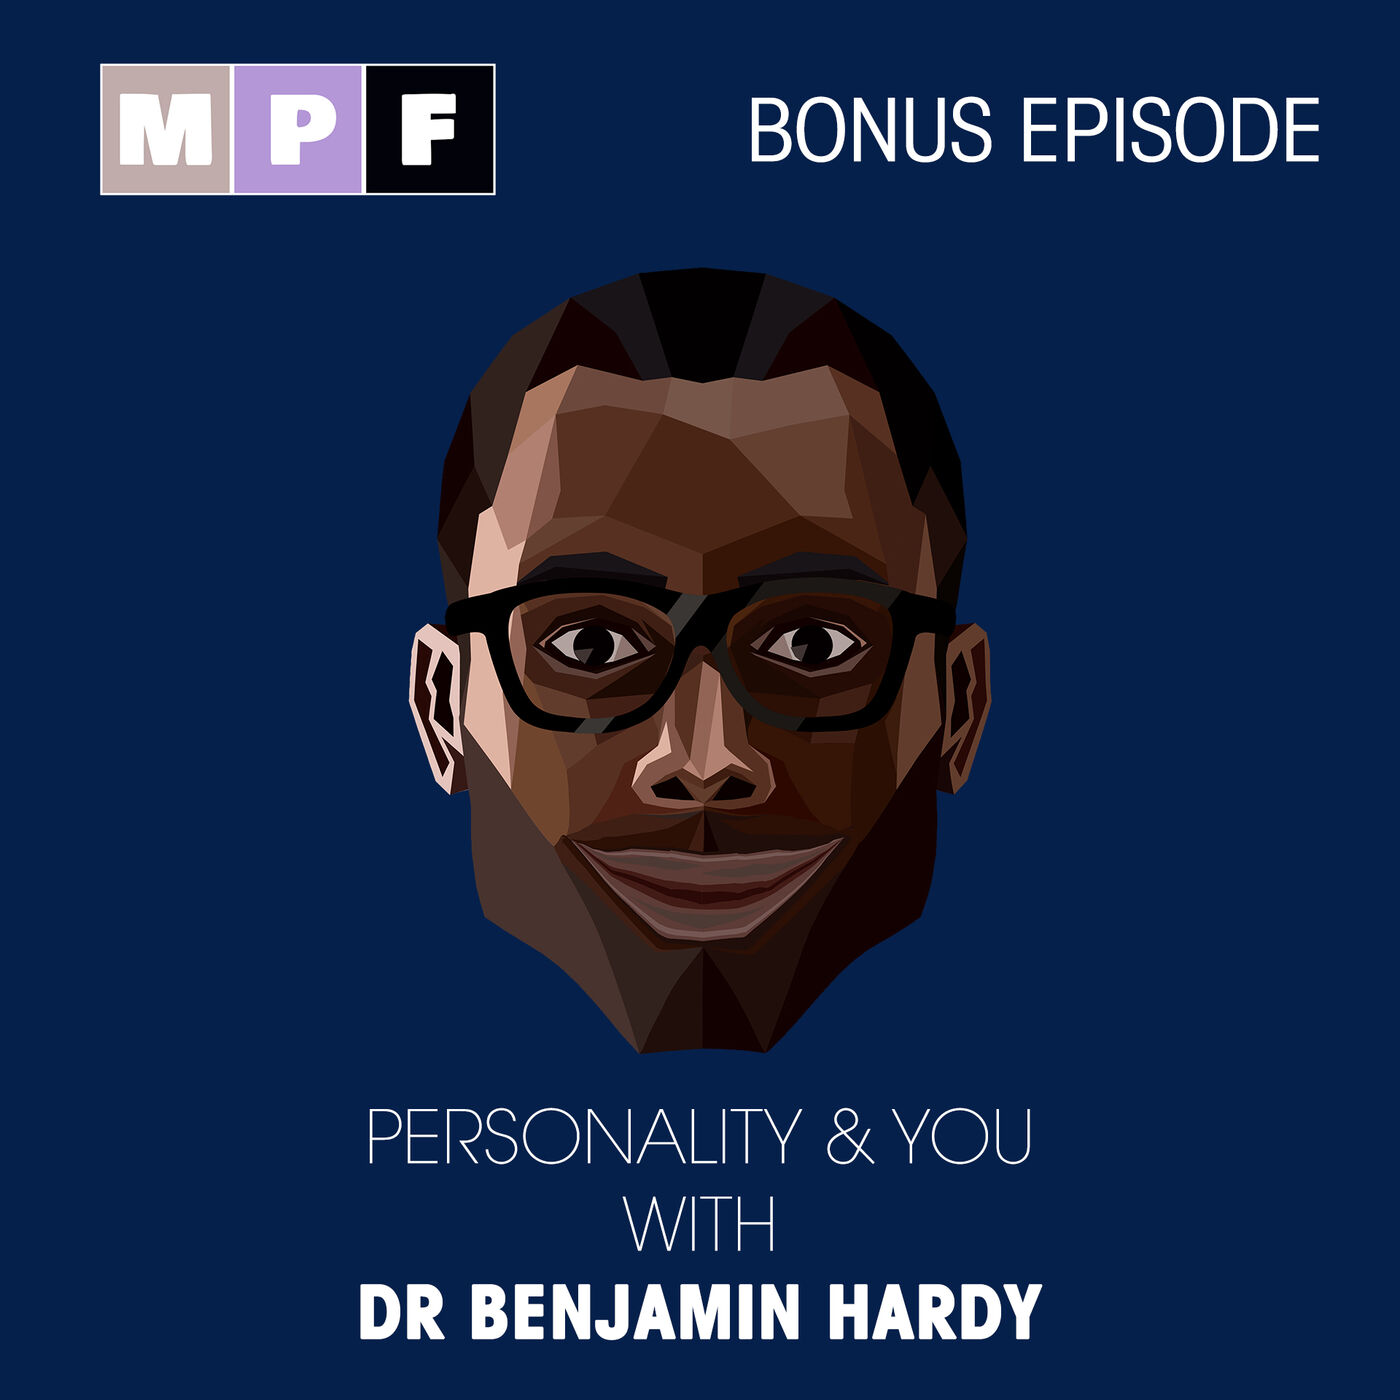 Dr Benjamin Hardy - Personality & You